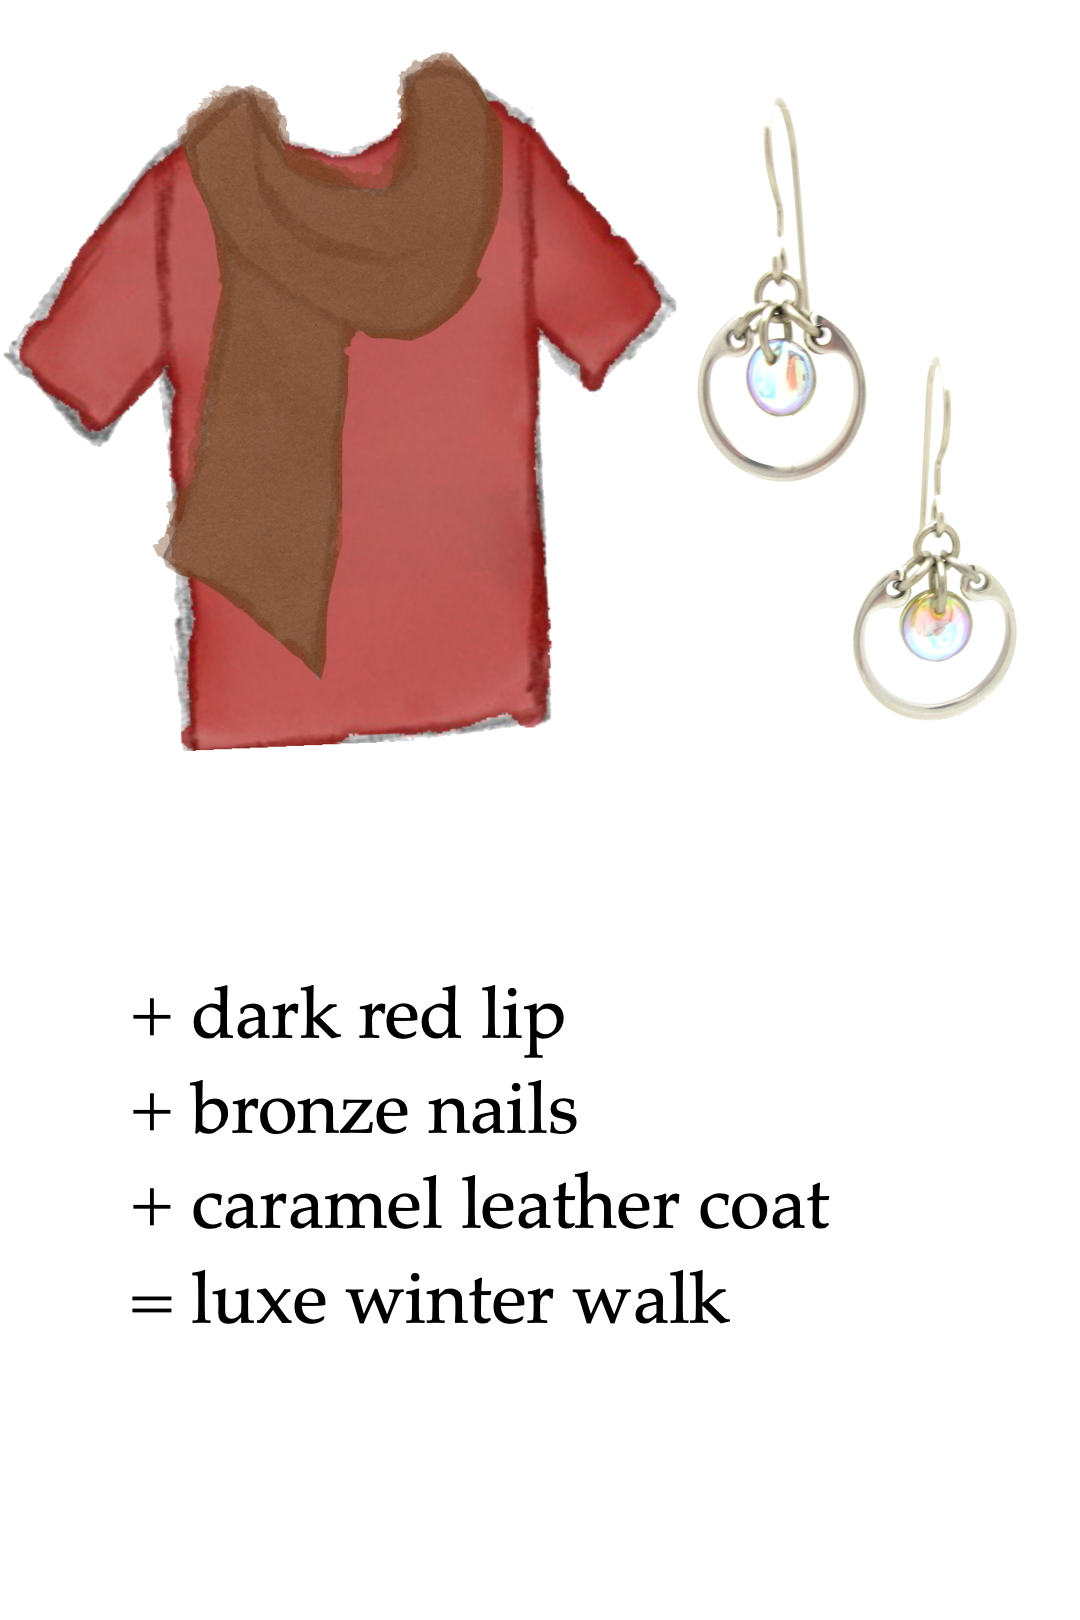 style sketch of a red tee + brown scarf with pale rainbow and silver-colored modern circle earrings; text reads + dark red lip + bronze nails + caramel leather coat = luxe winter walk